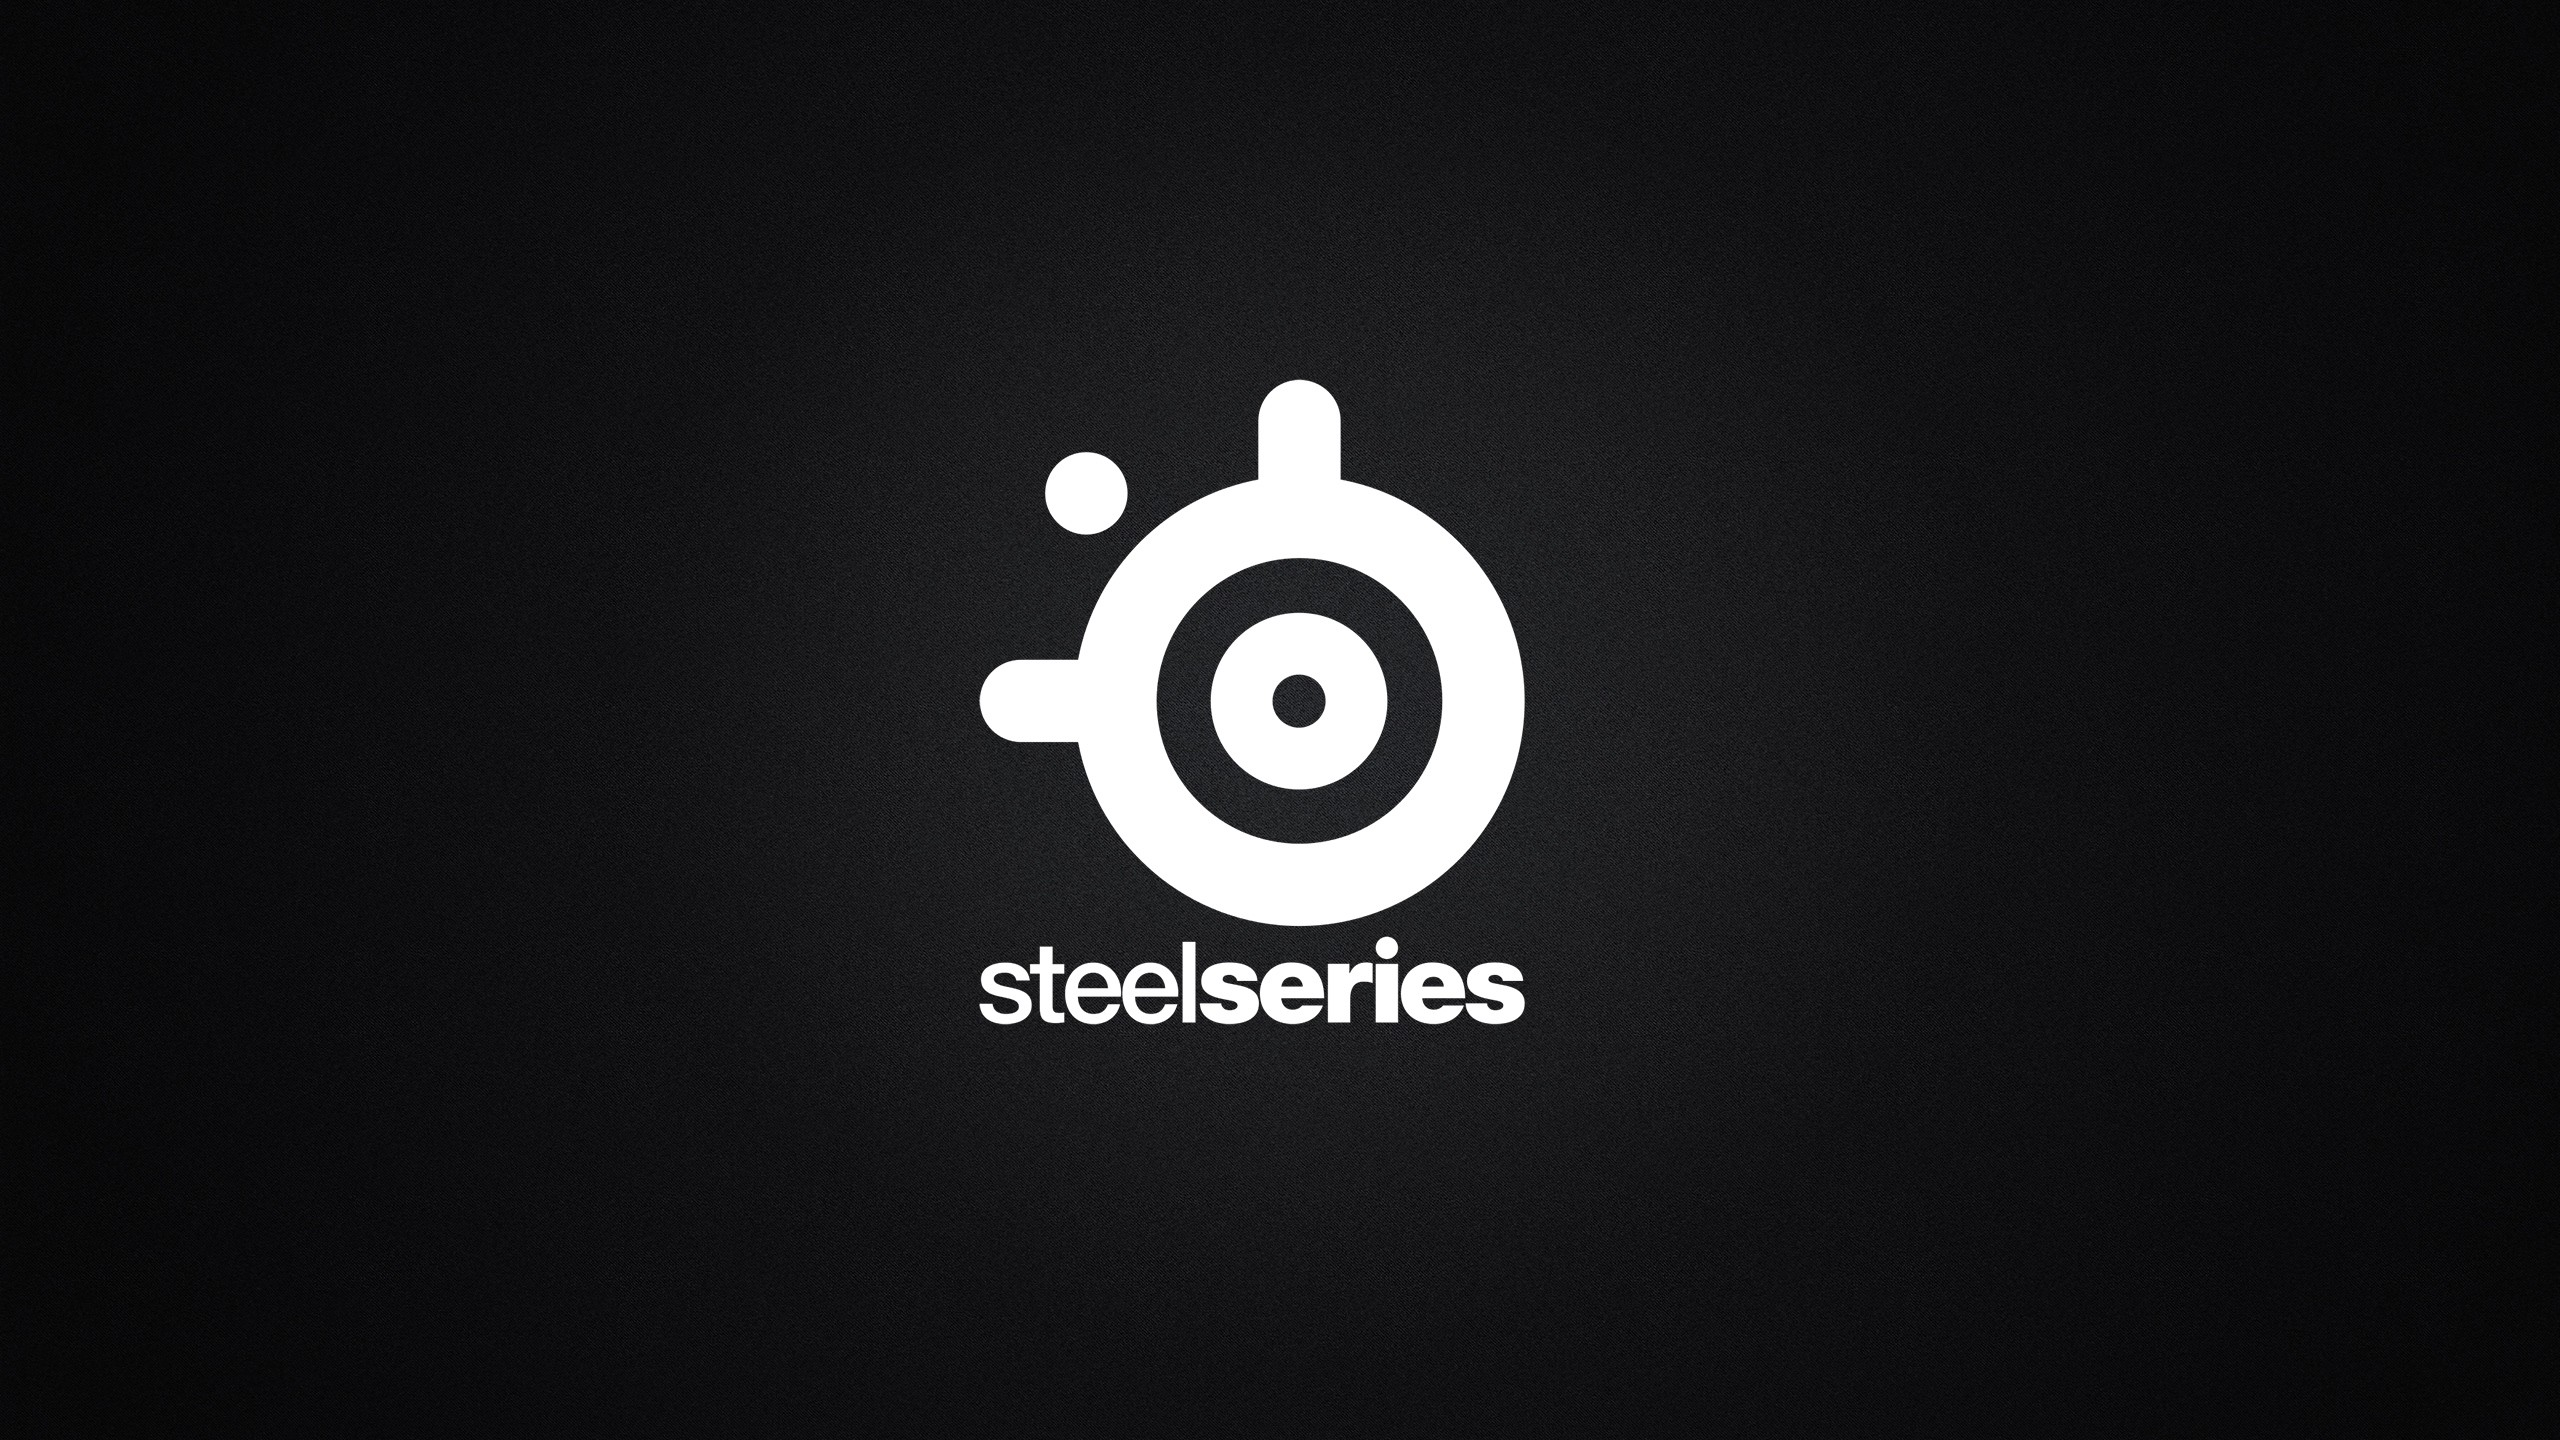 SteelSeries - logo